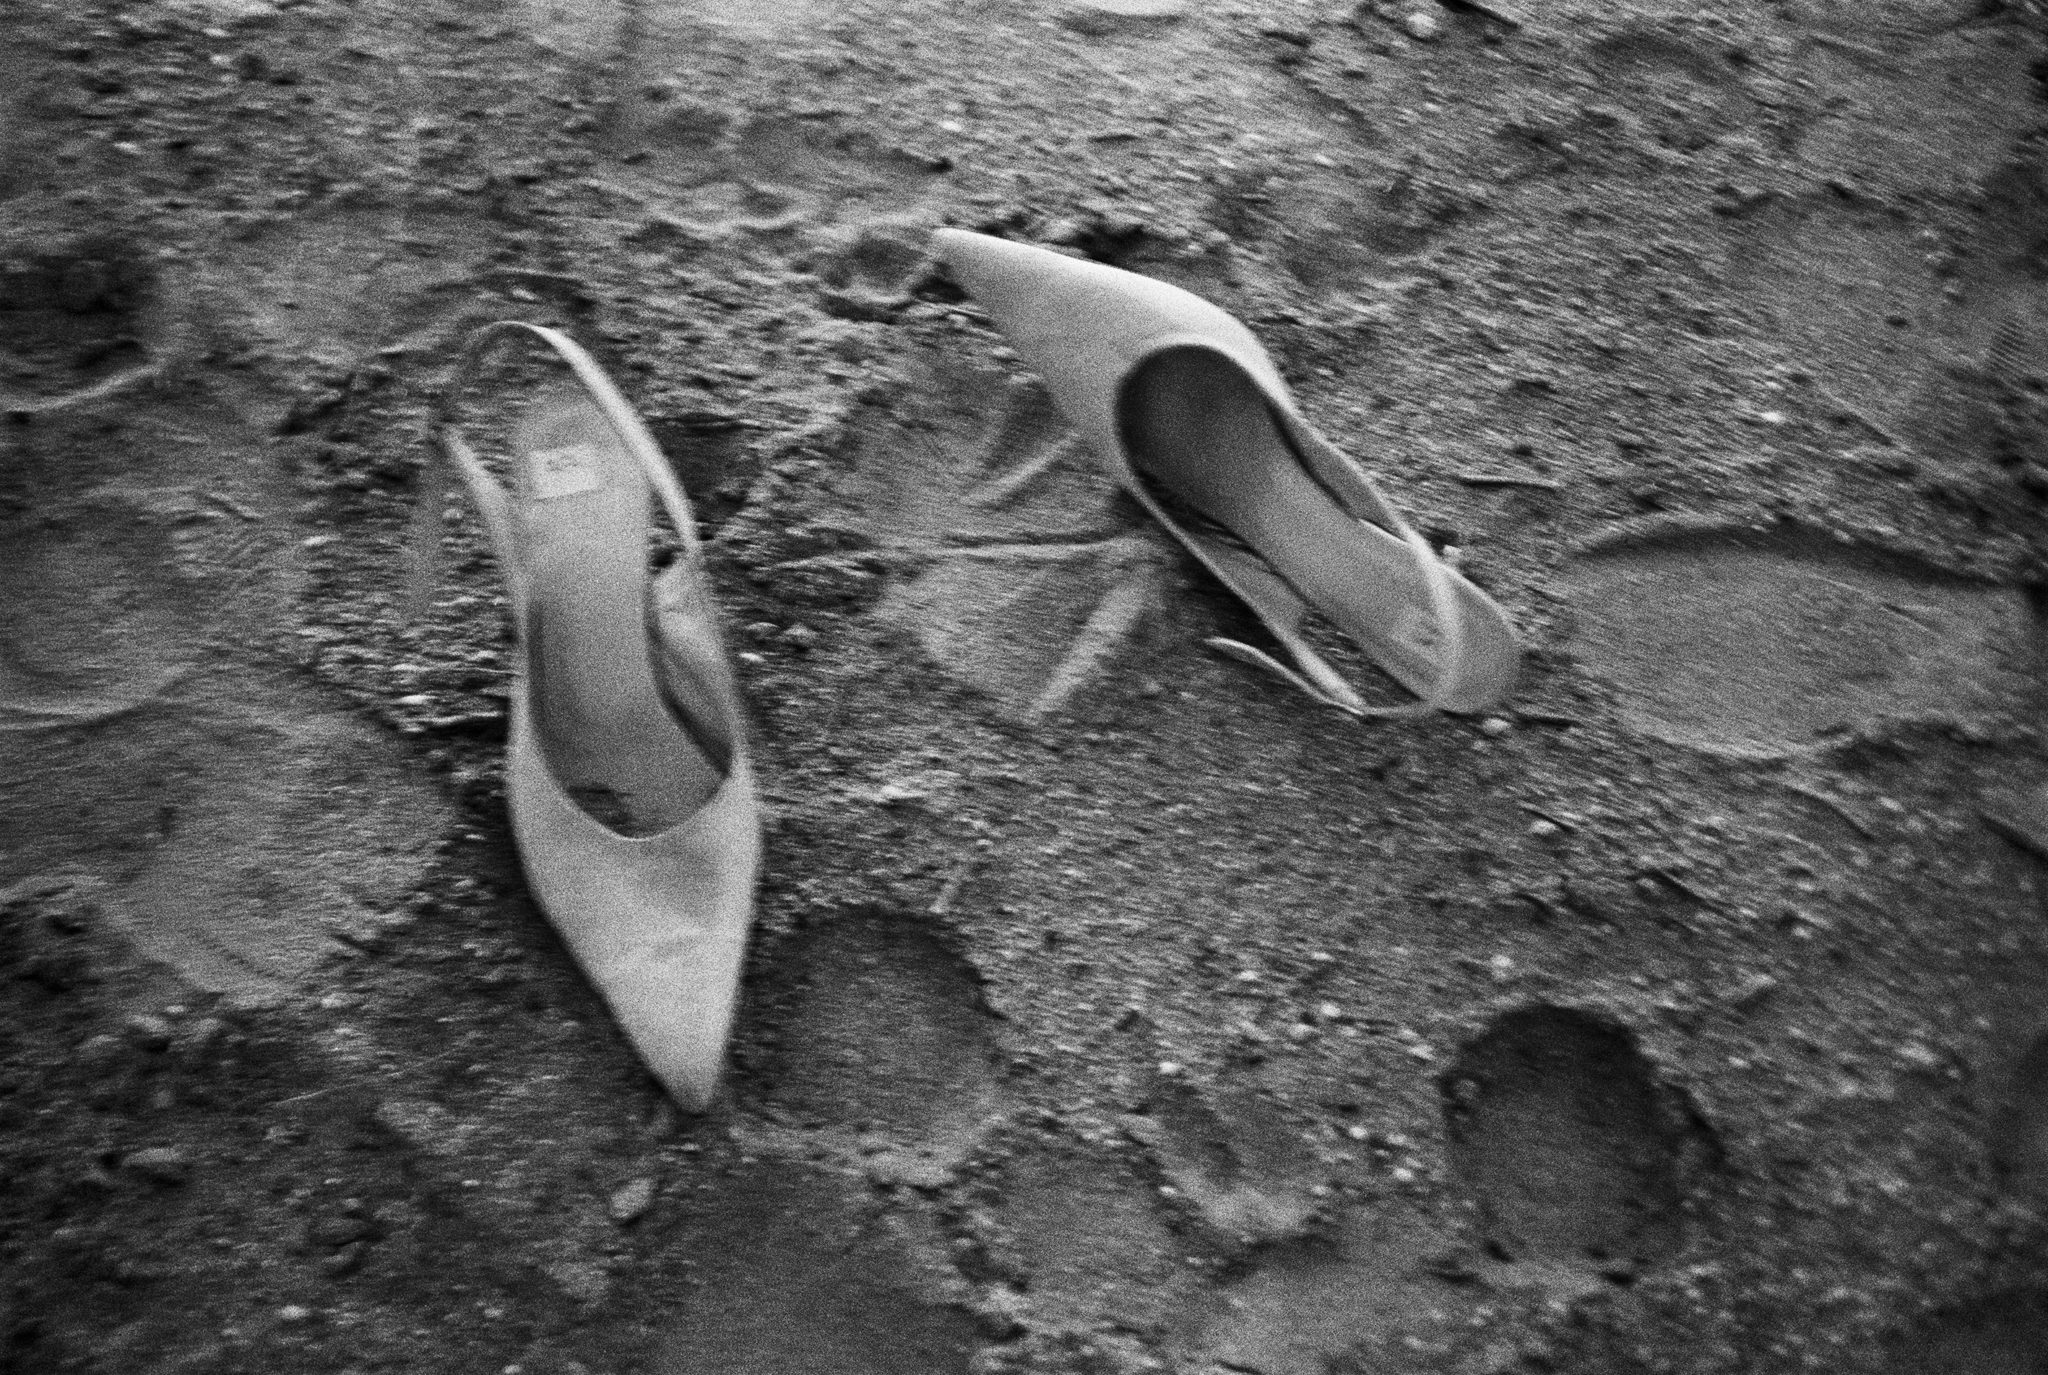 Milla's shoes, 1990 ©Peter Lindbergh